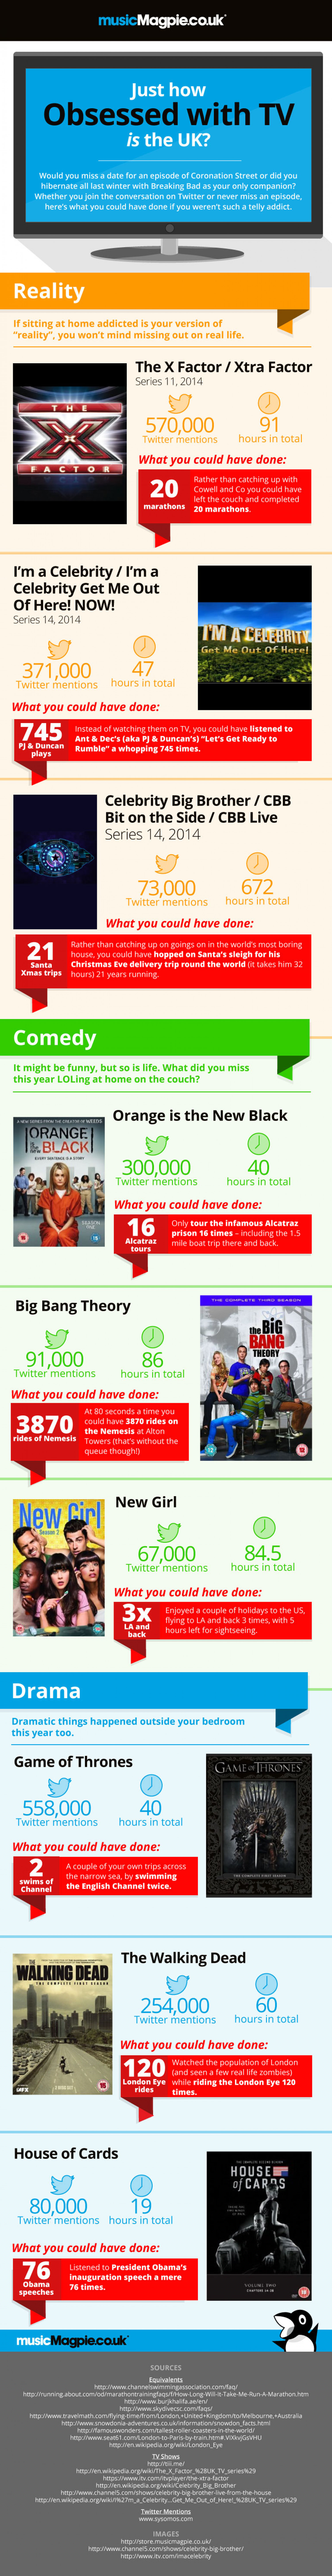 How obsessed with TV is the UK? Infographic